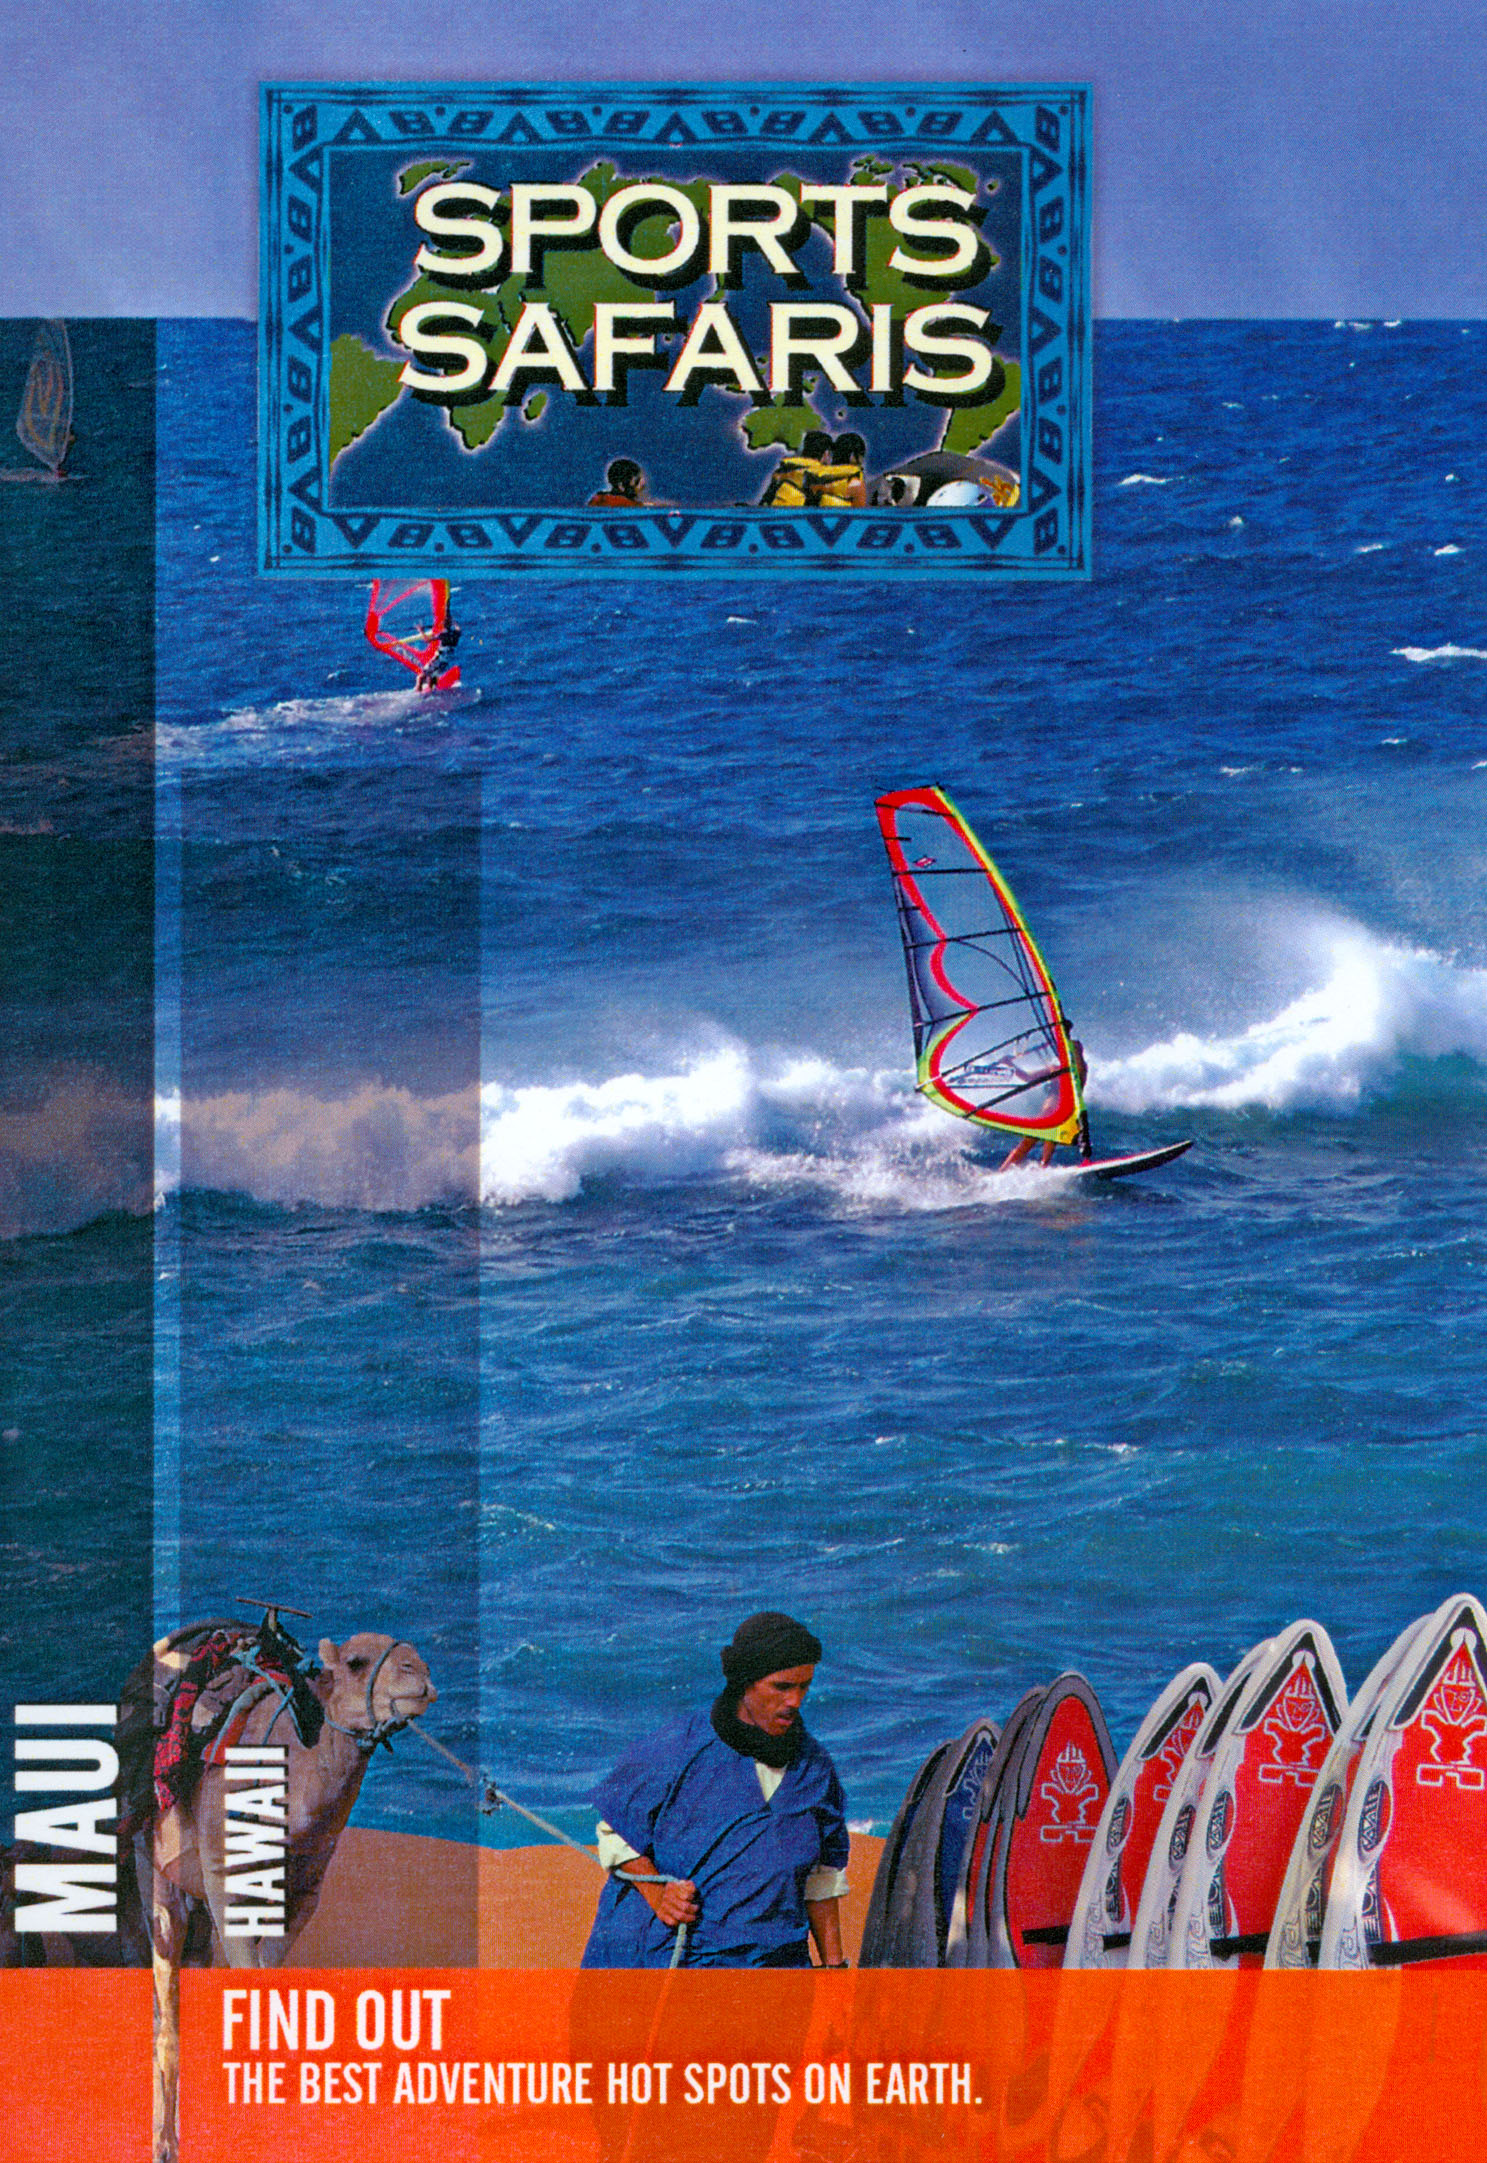 Sports Safaris: Maui Hawaii